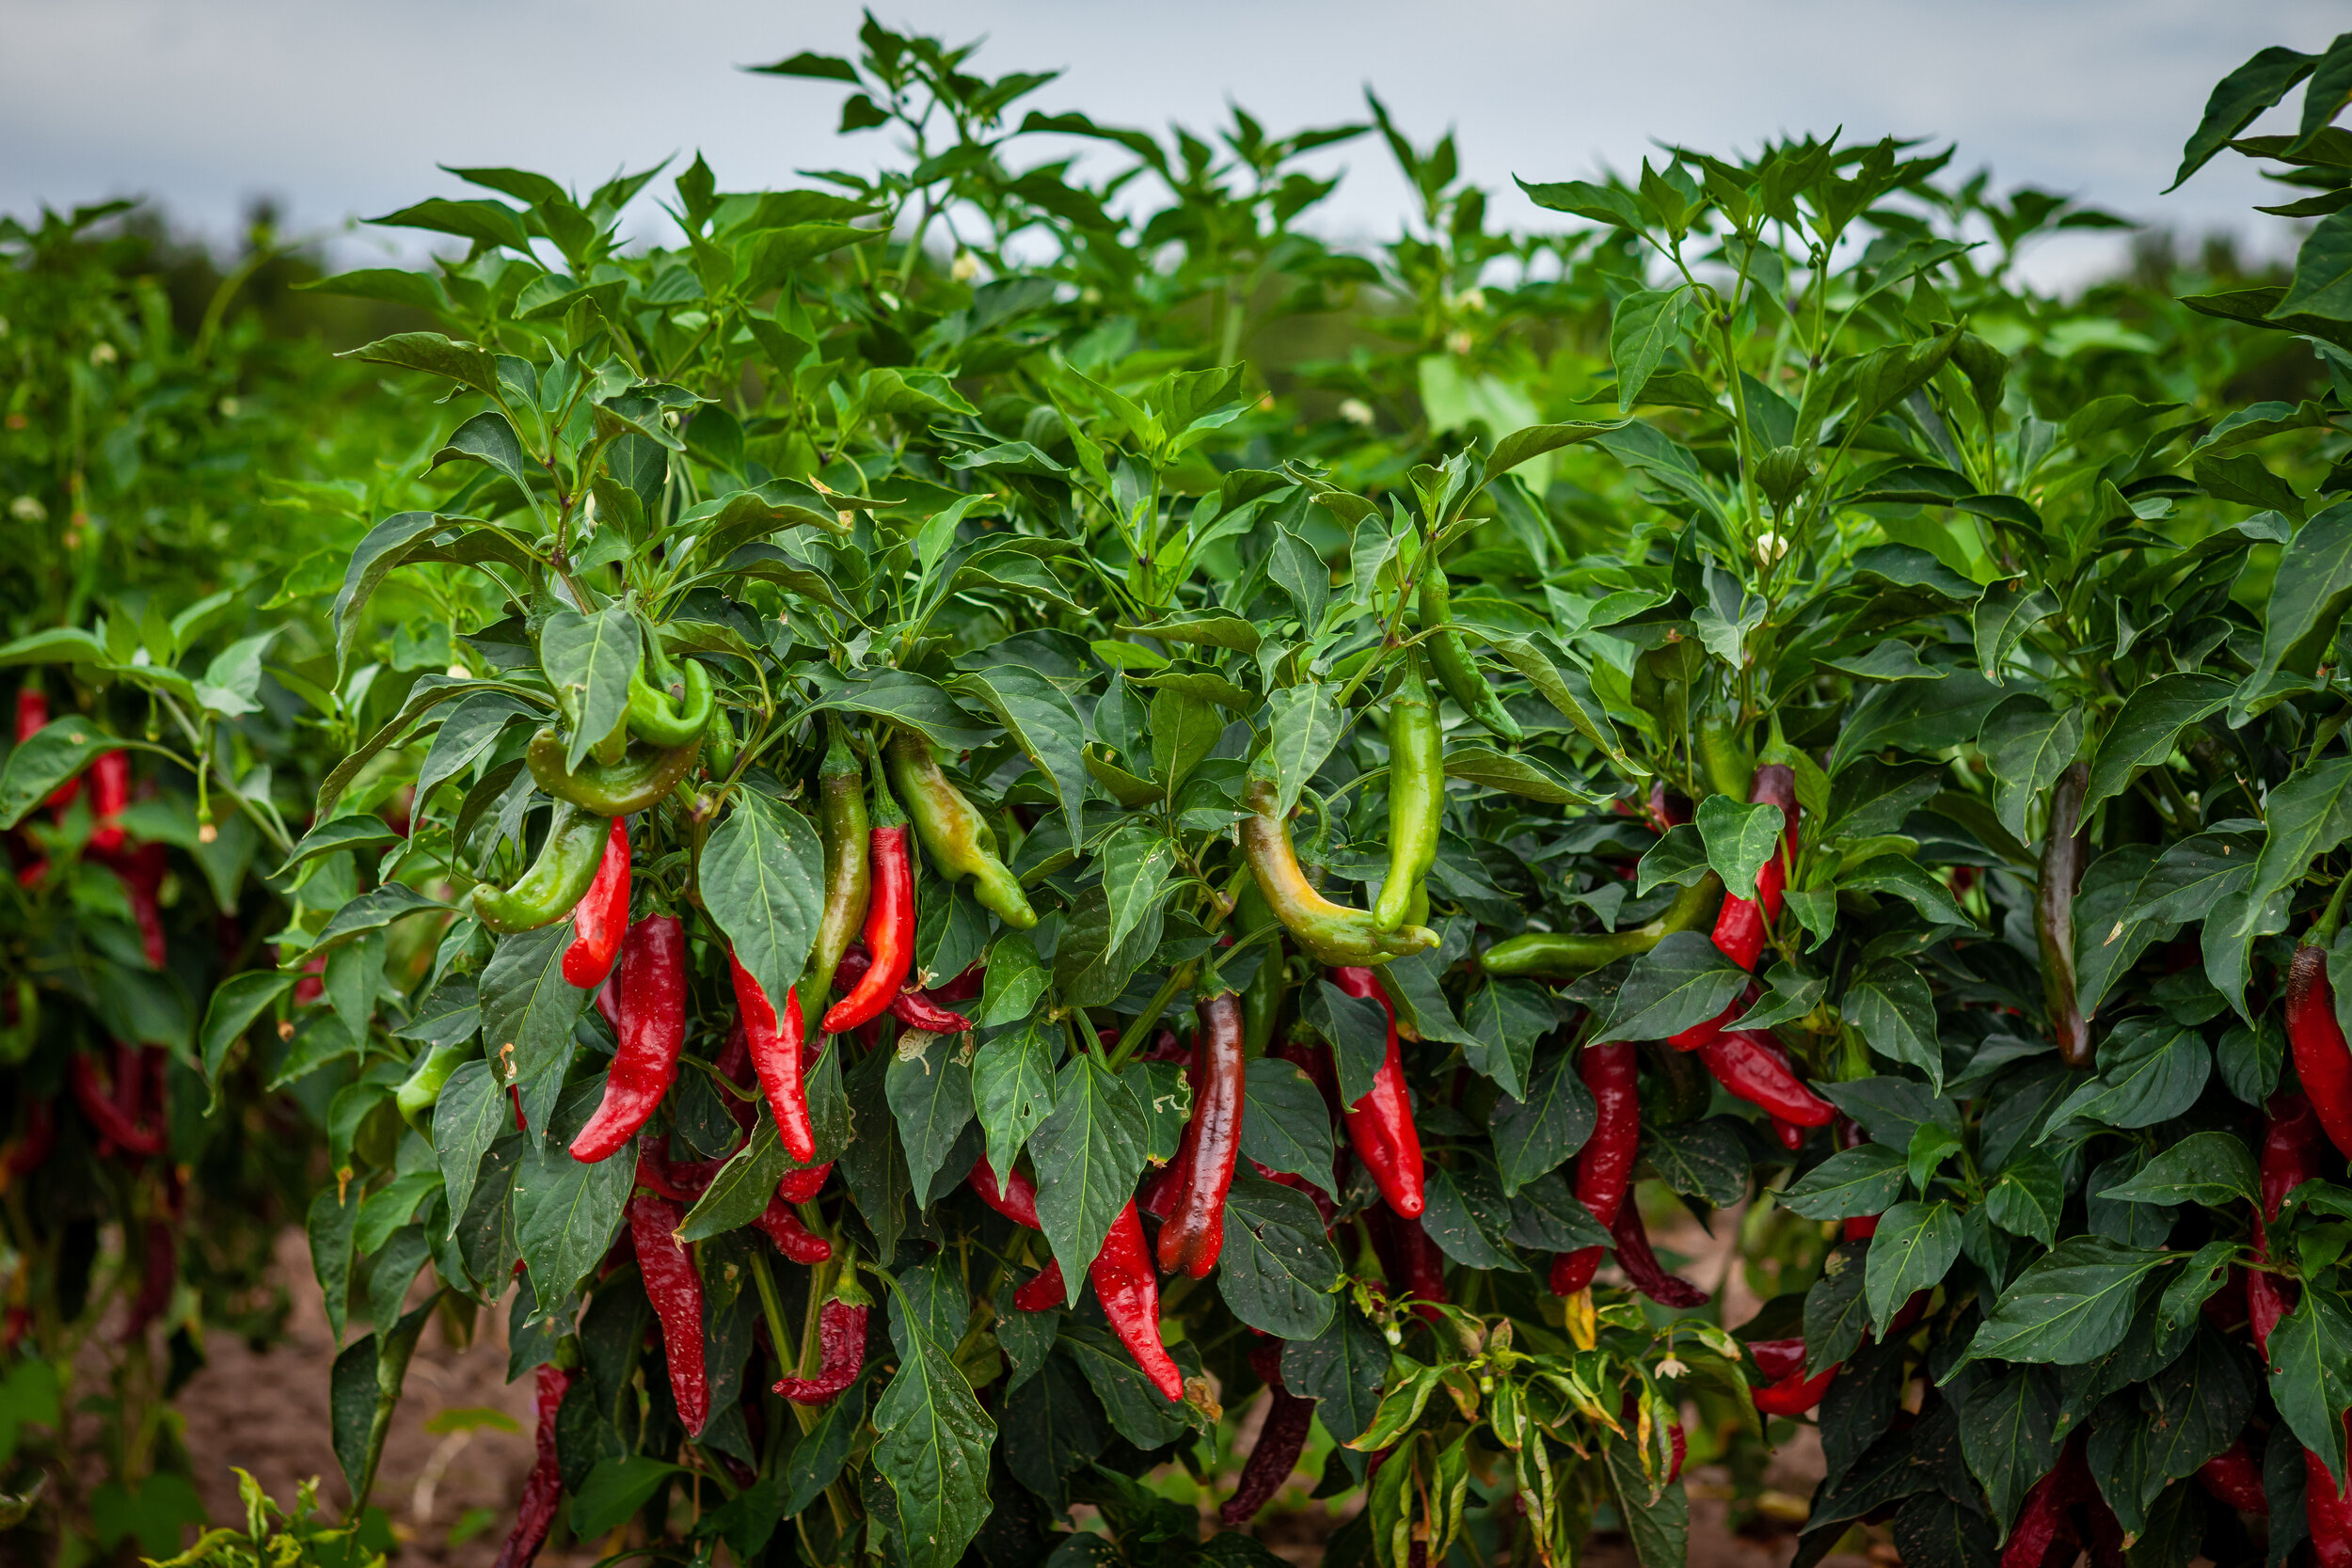 Peppers - Grown The Way Nature Intended